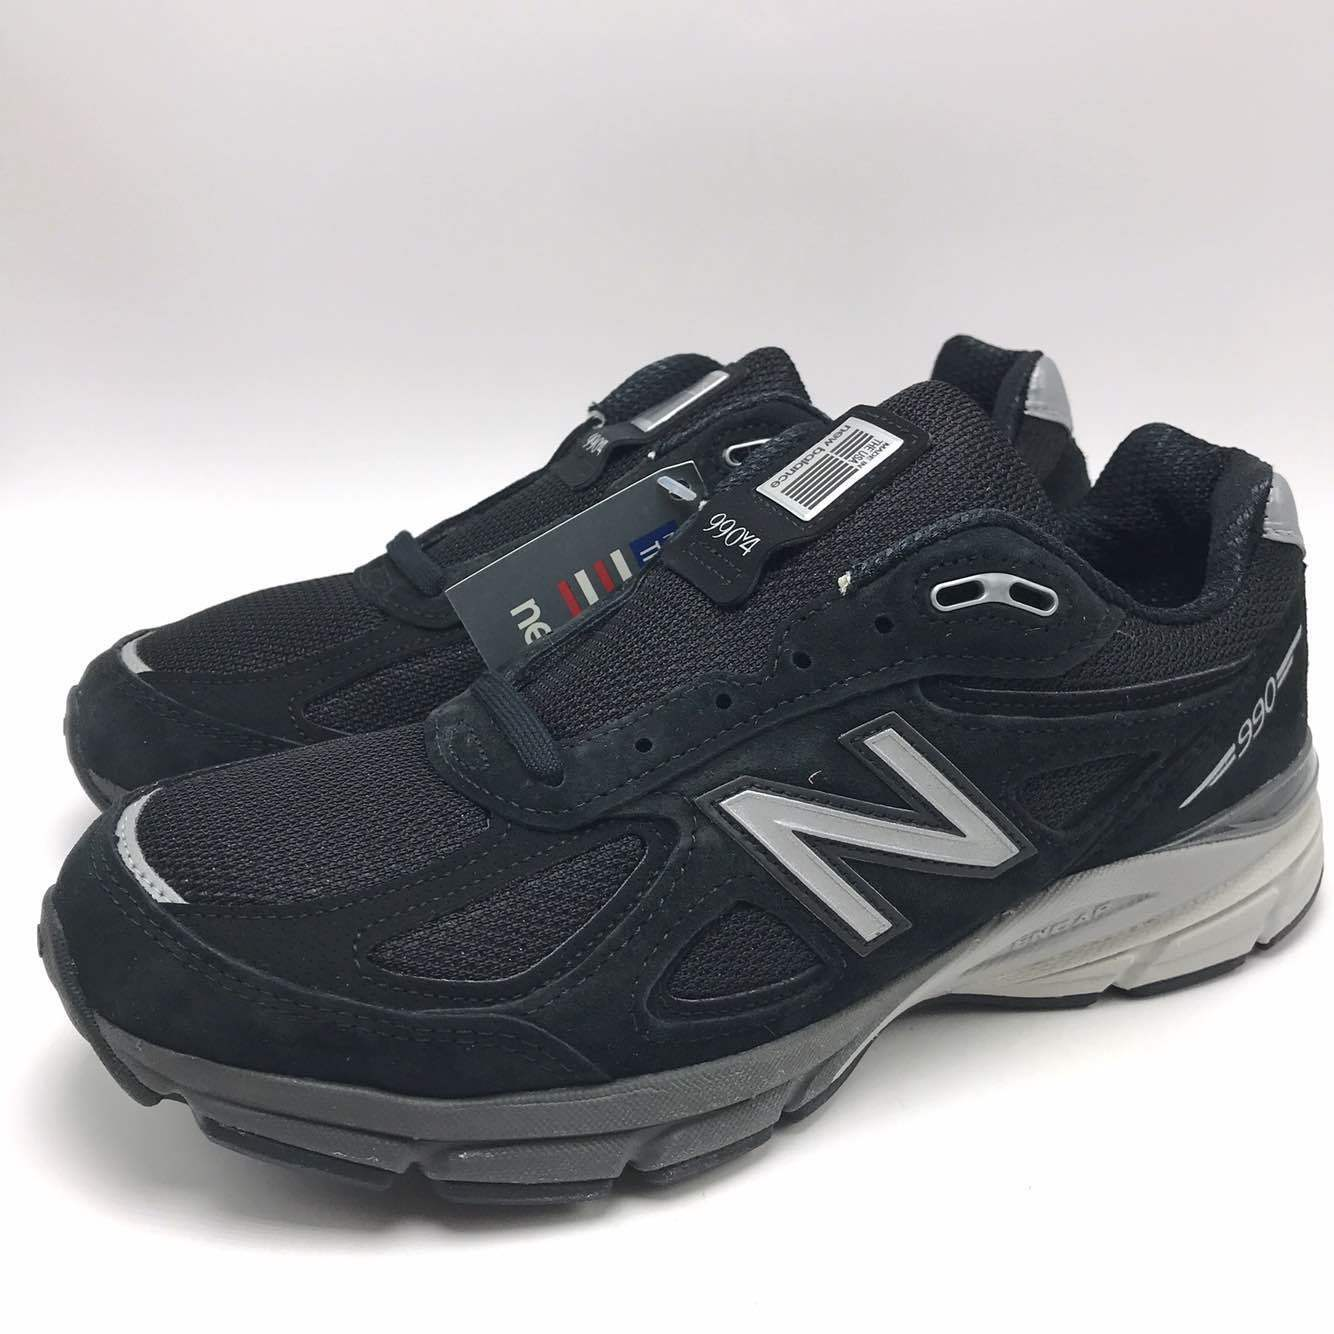 New Balance Homme Chaussure De Course Noir Made In USA M990BK4